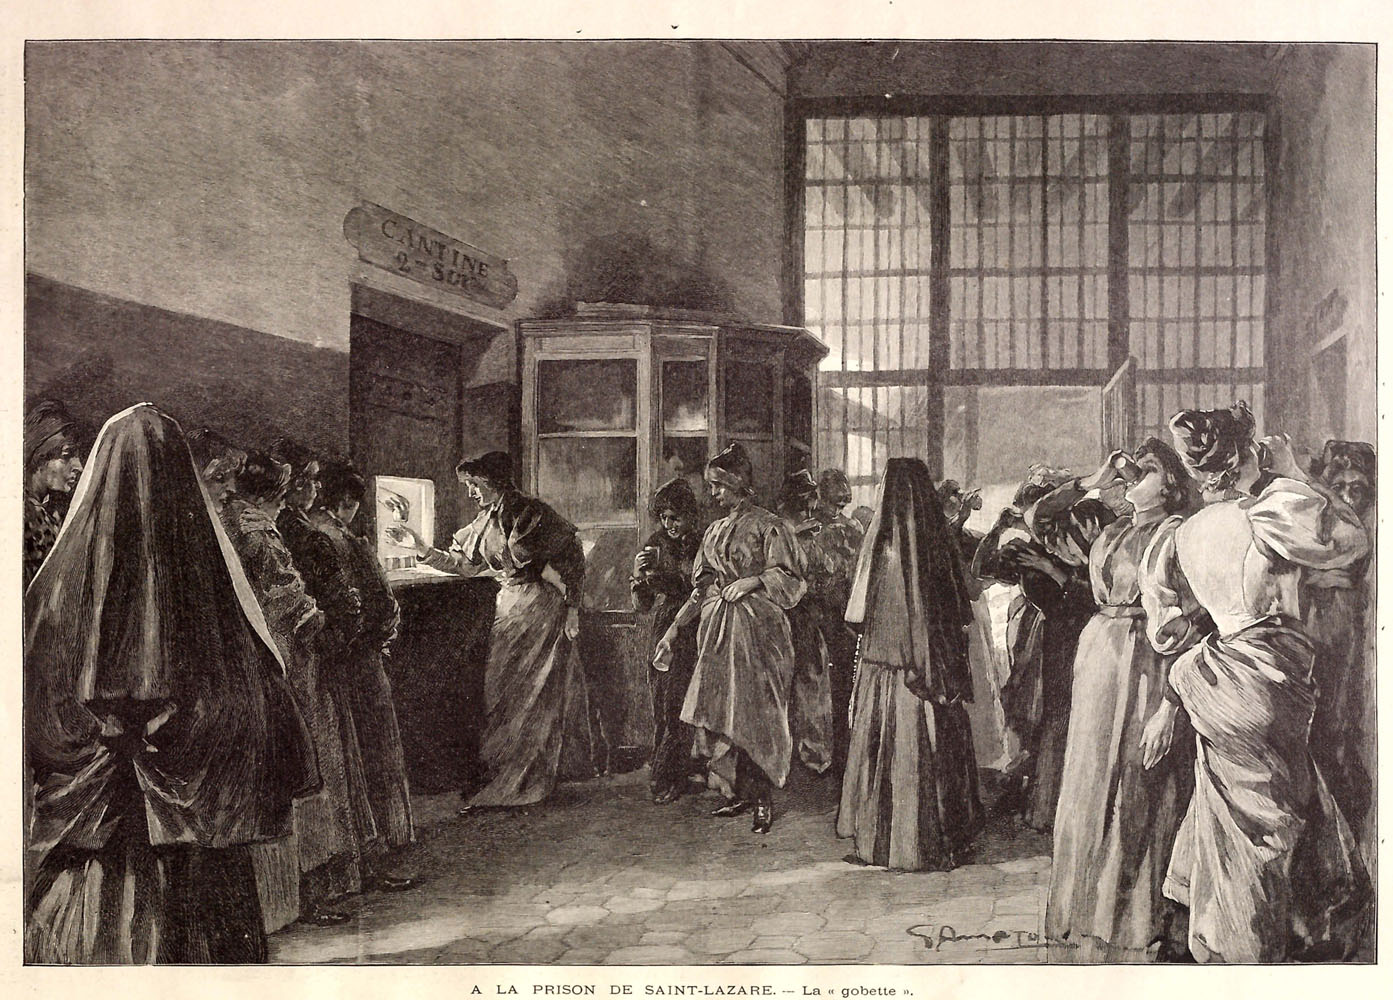 Prisoners at the Prison Cantine